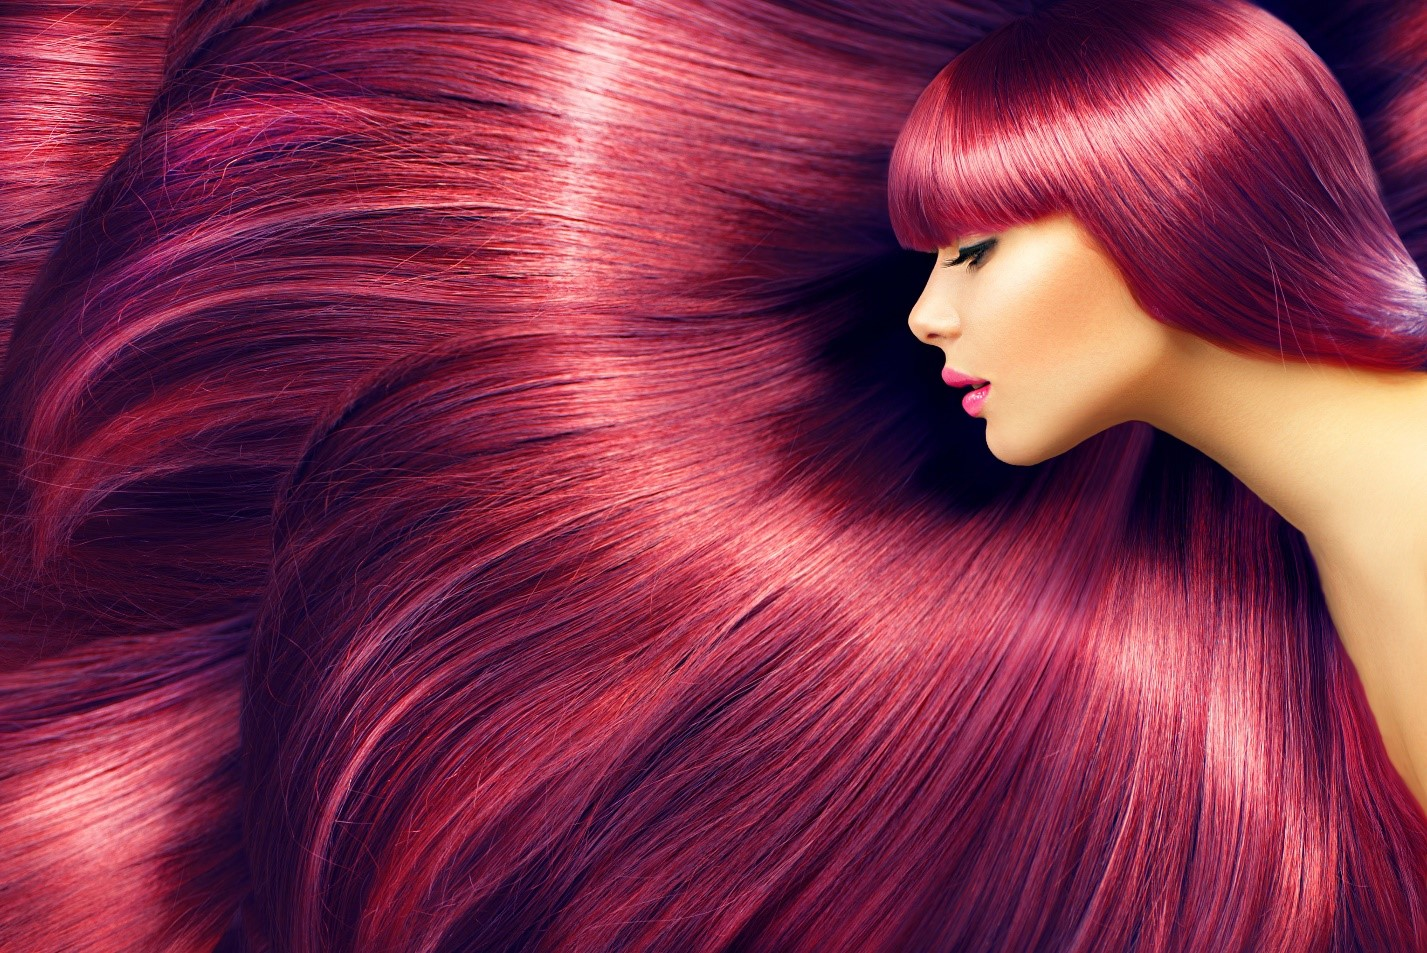 Top 5 Tips to Take Care of Chemically Treated Hair